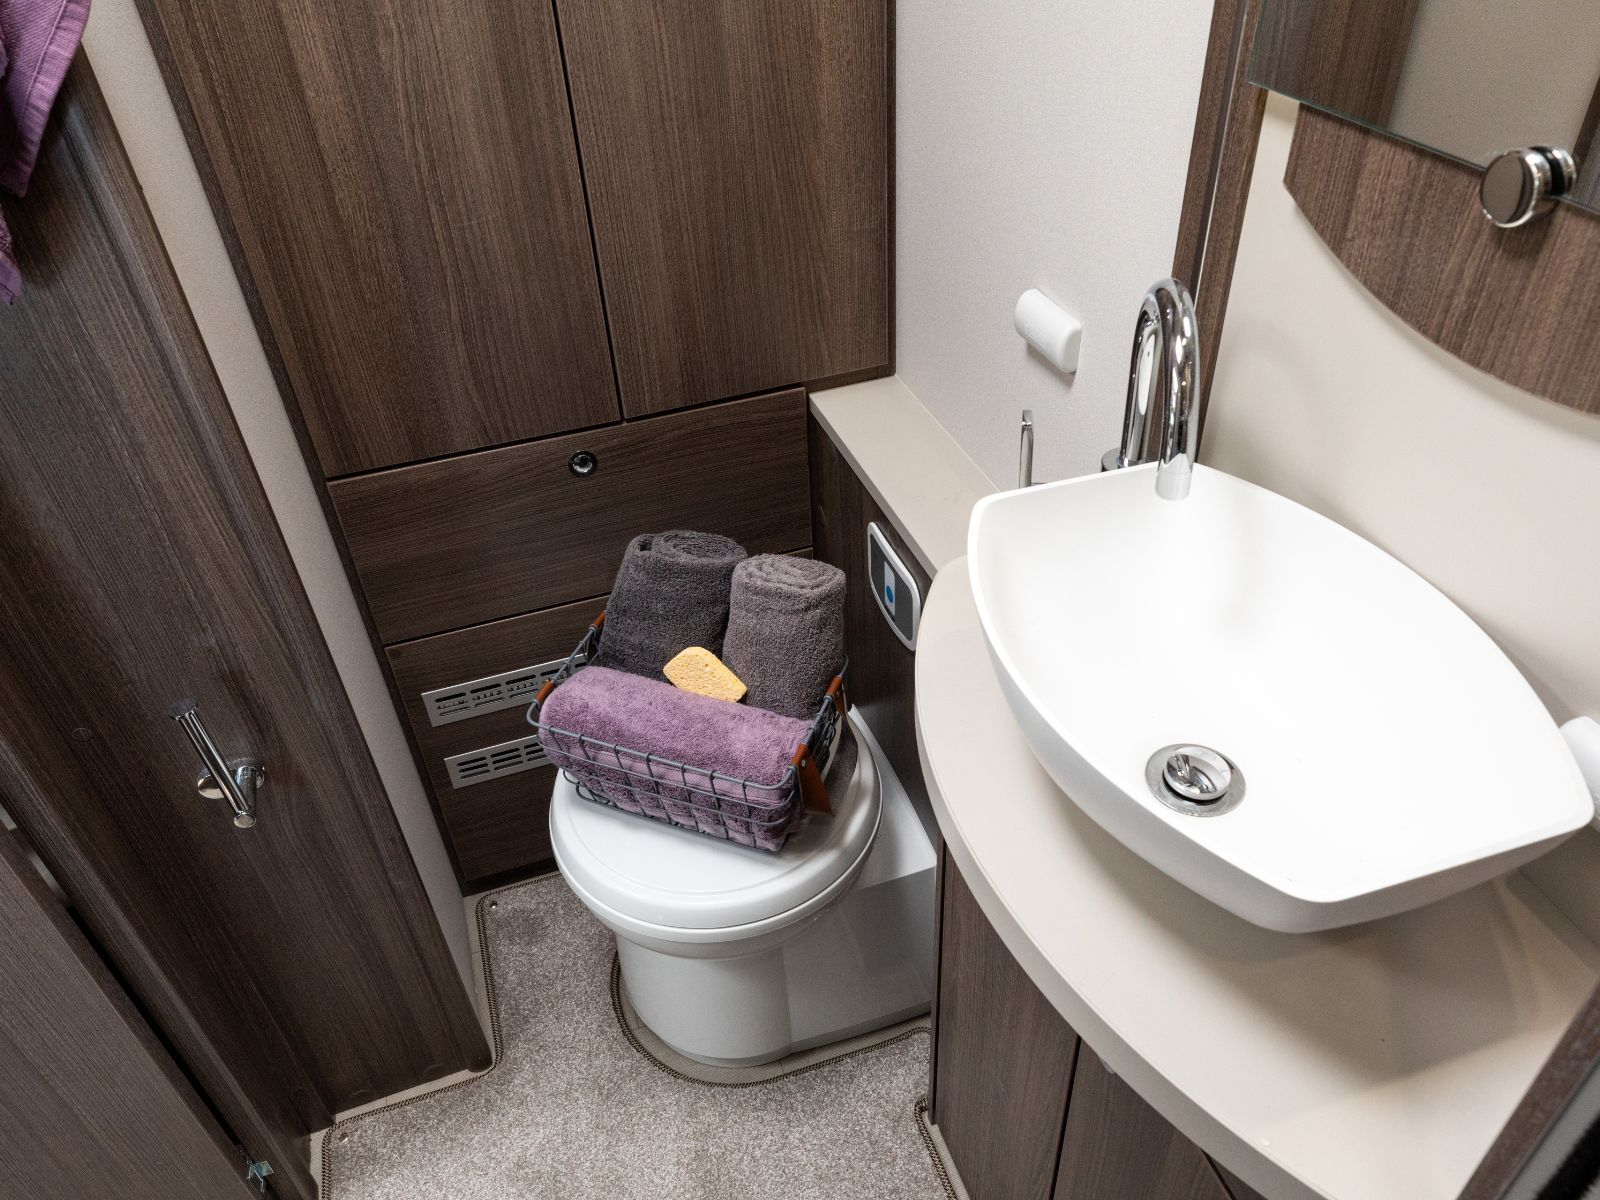 Bathroom layout with sink and toilet featuring assortment of toiletries'